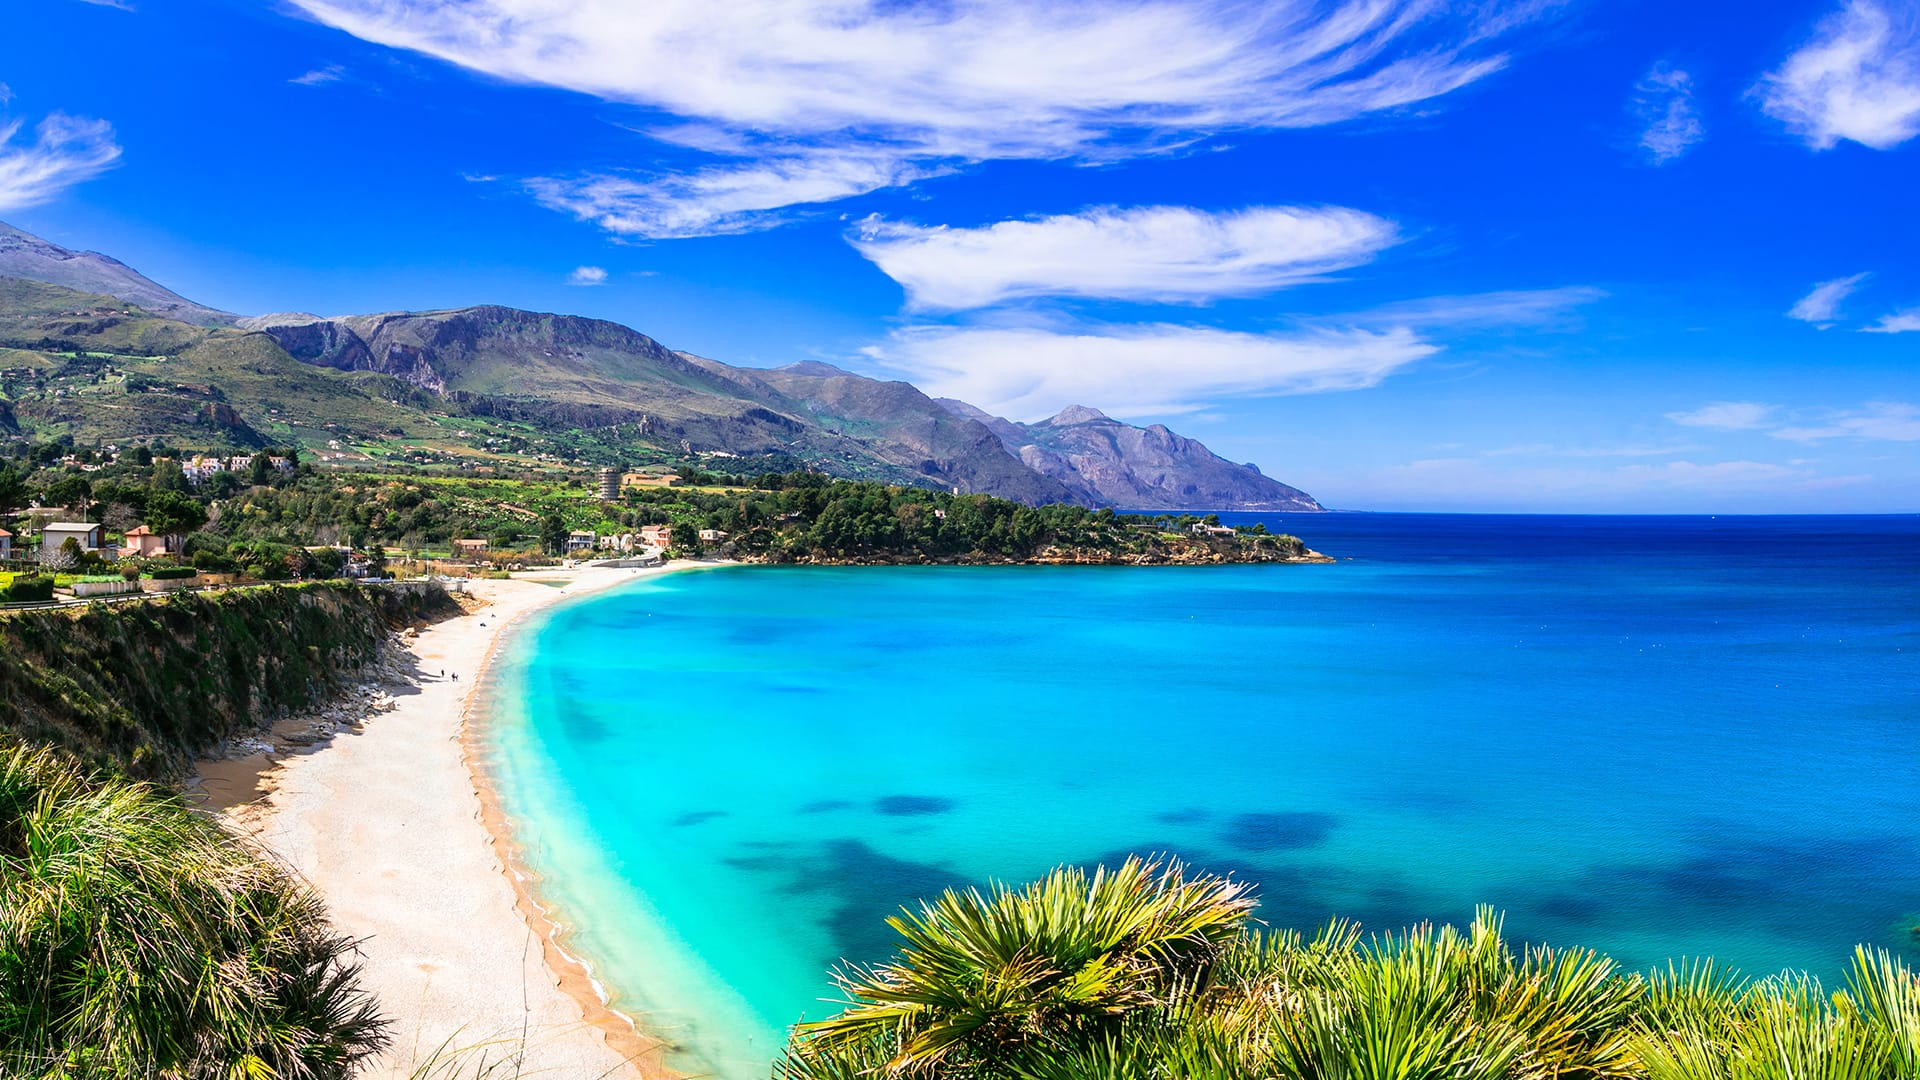 excursions sicily - private sicily tours expert